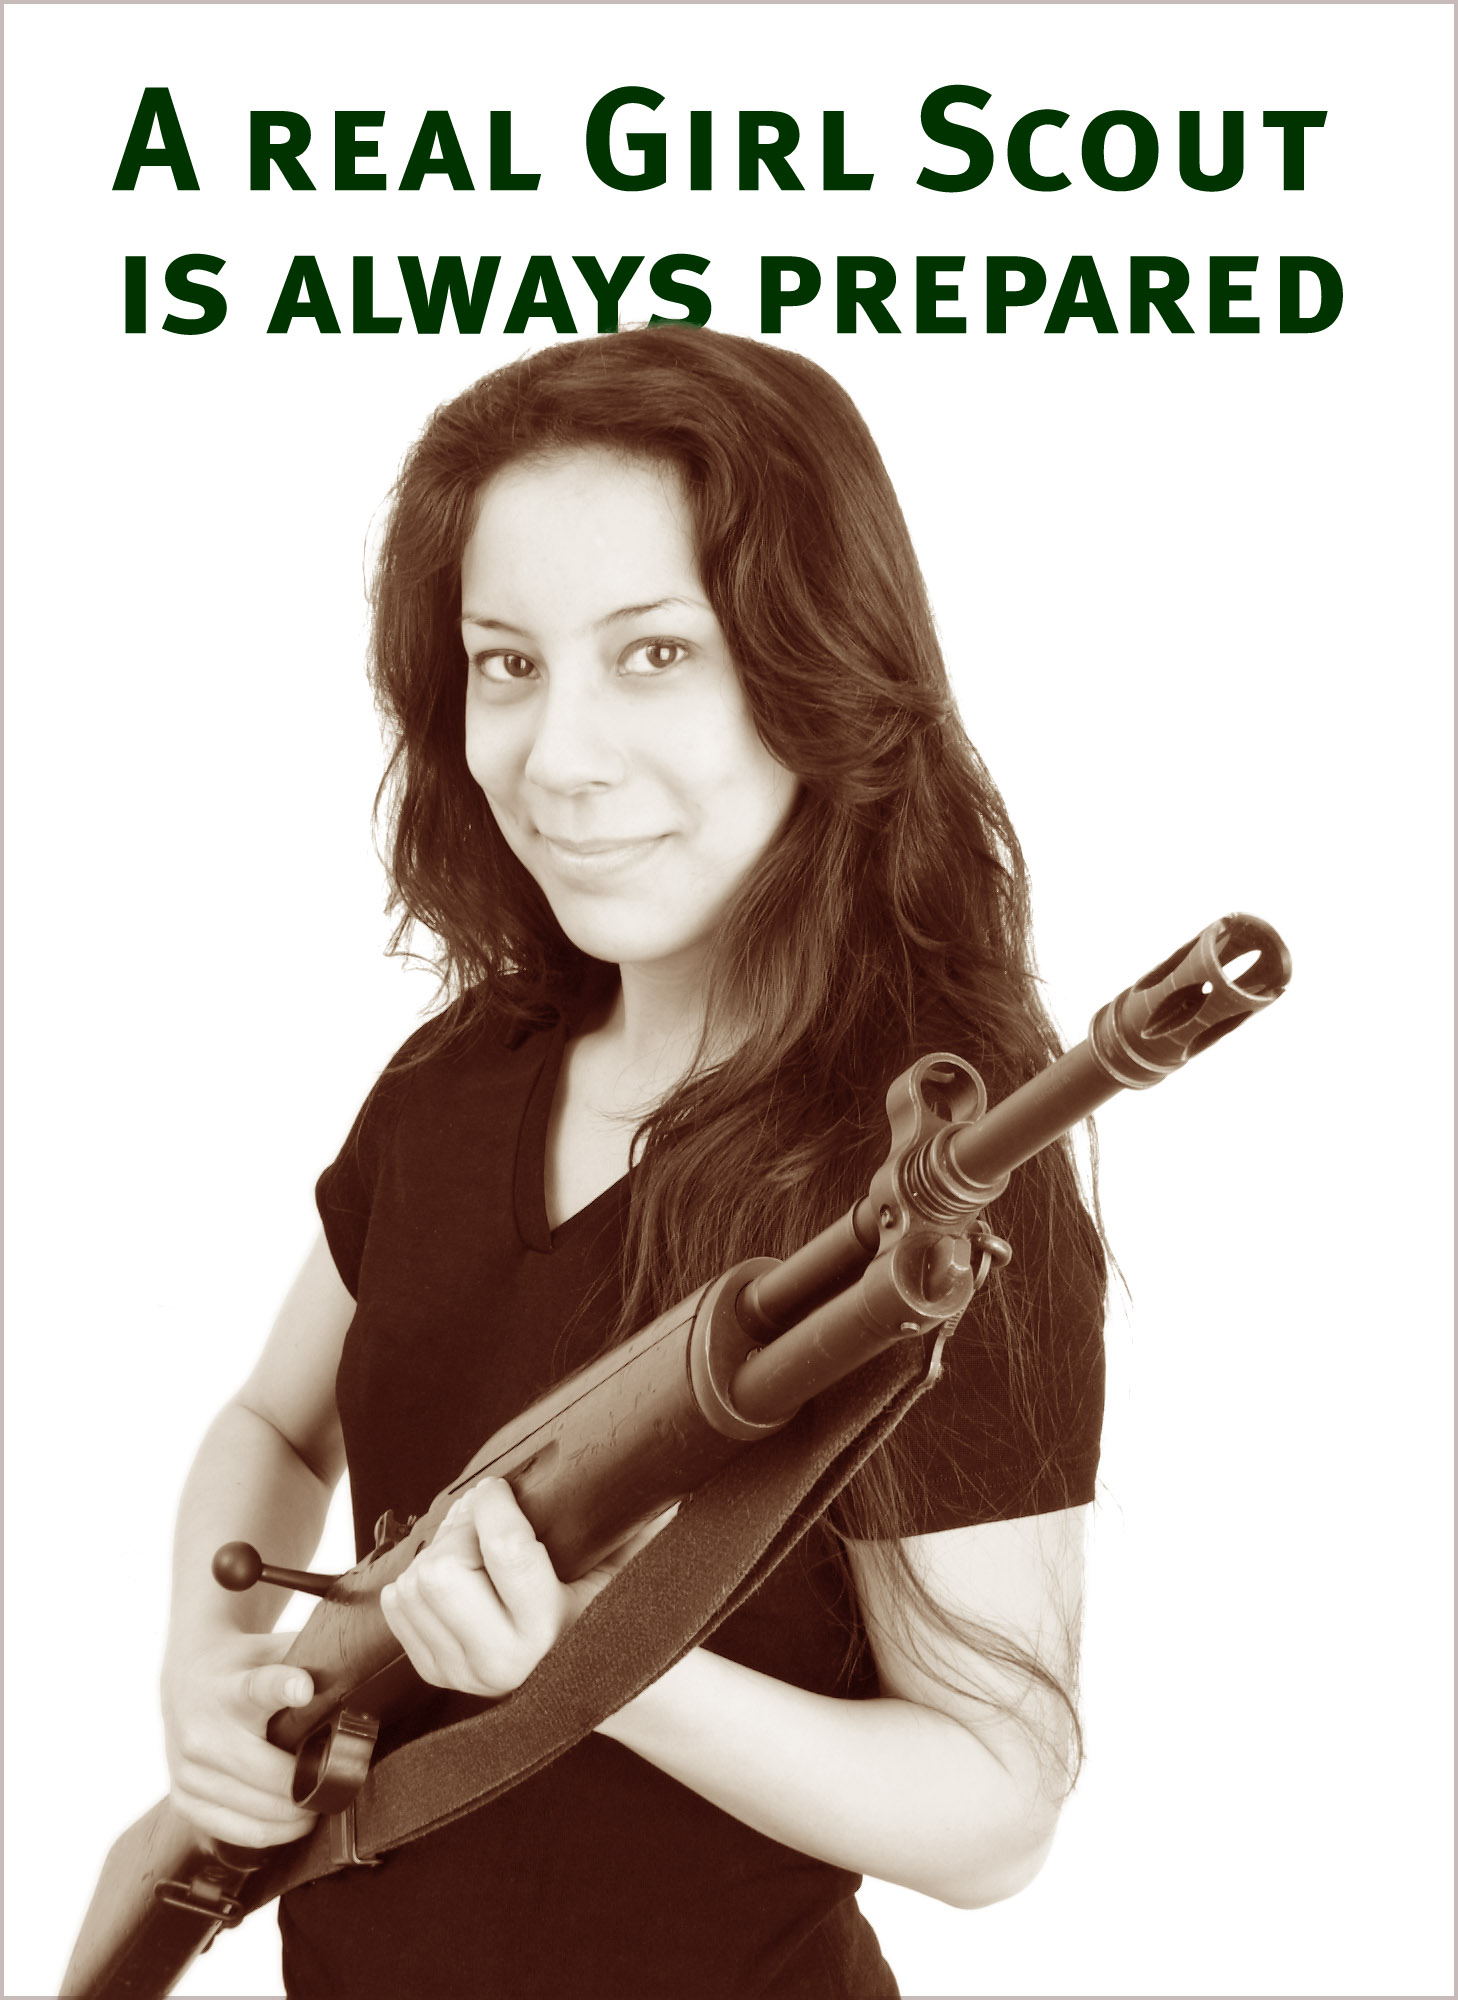 I collect Pro Second Amendment posters, so....-girlscout.jpg